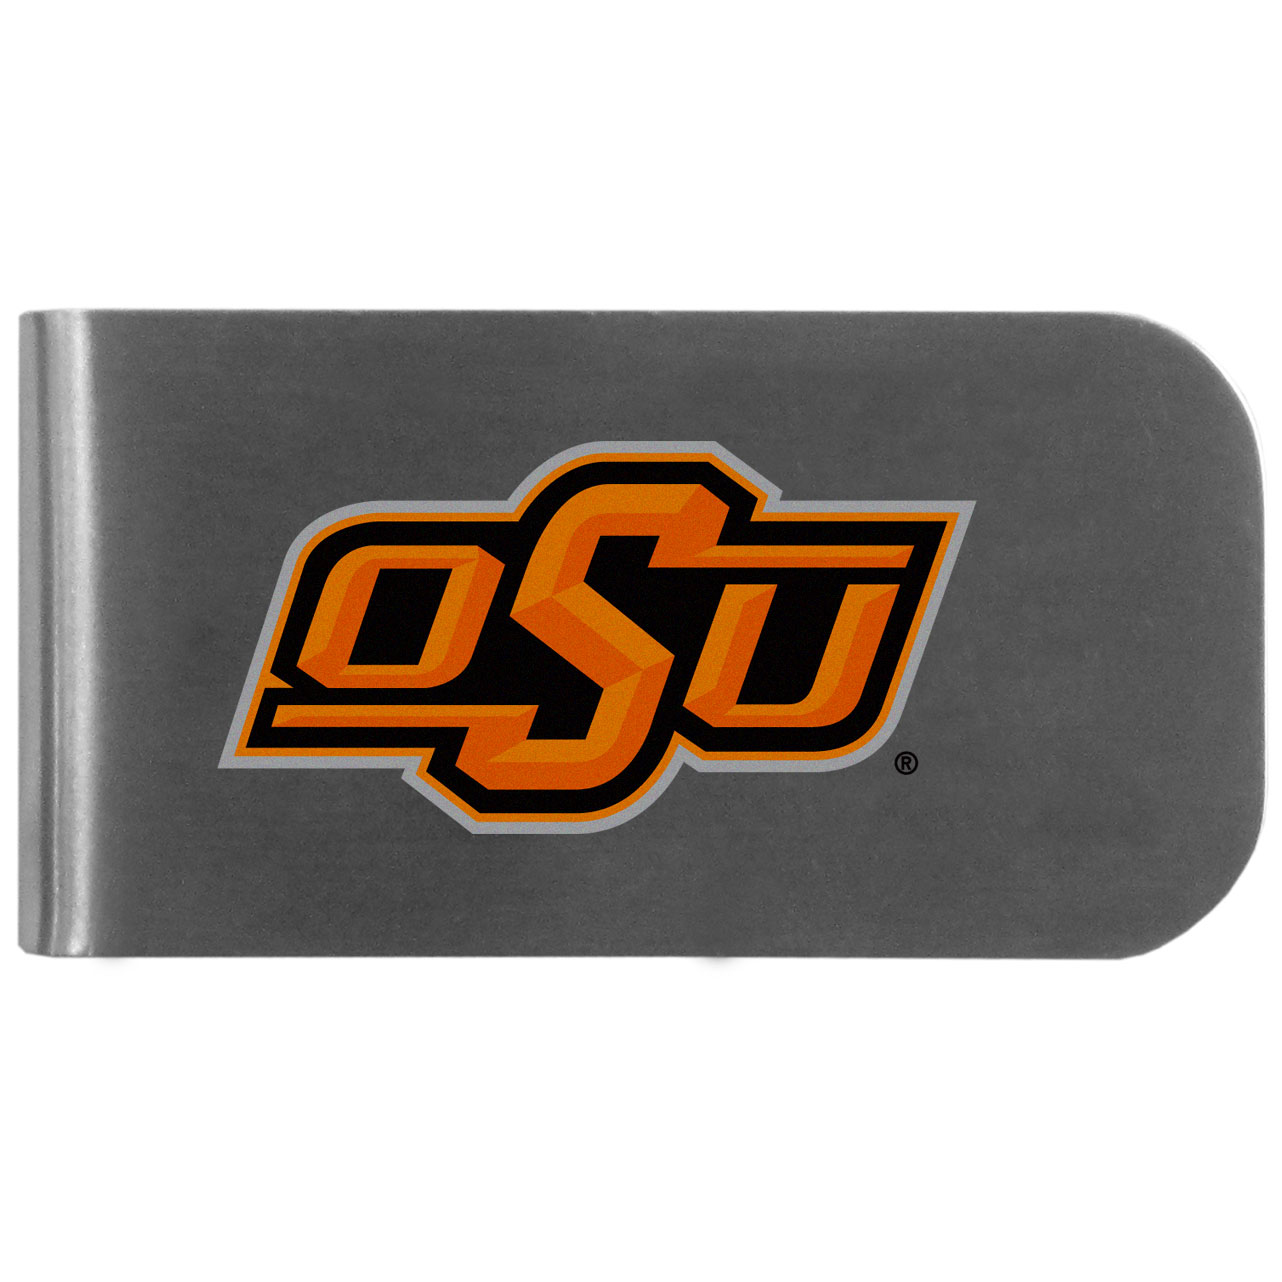 Oklahoma St. Cowboys Logo Bottle Opener Money Clip - This unique money clip features a classic, brushed-metal finish with a handy bottle opener feature on the back. The clip has the Oklahoma St. Cowboys logo expertly printed on the front of the clip.